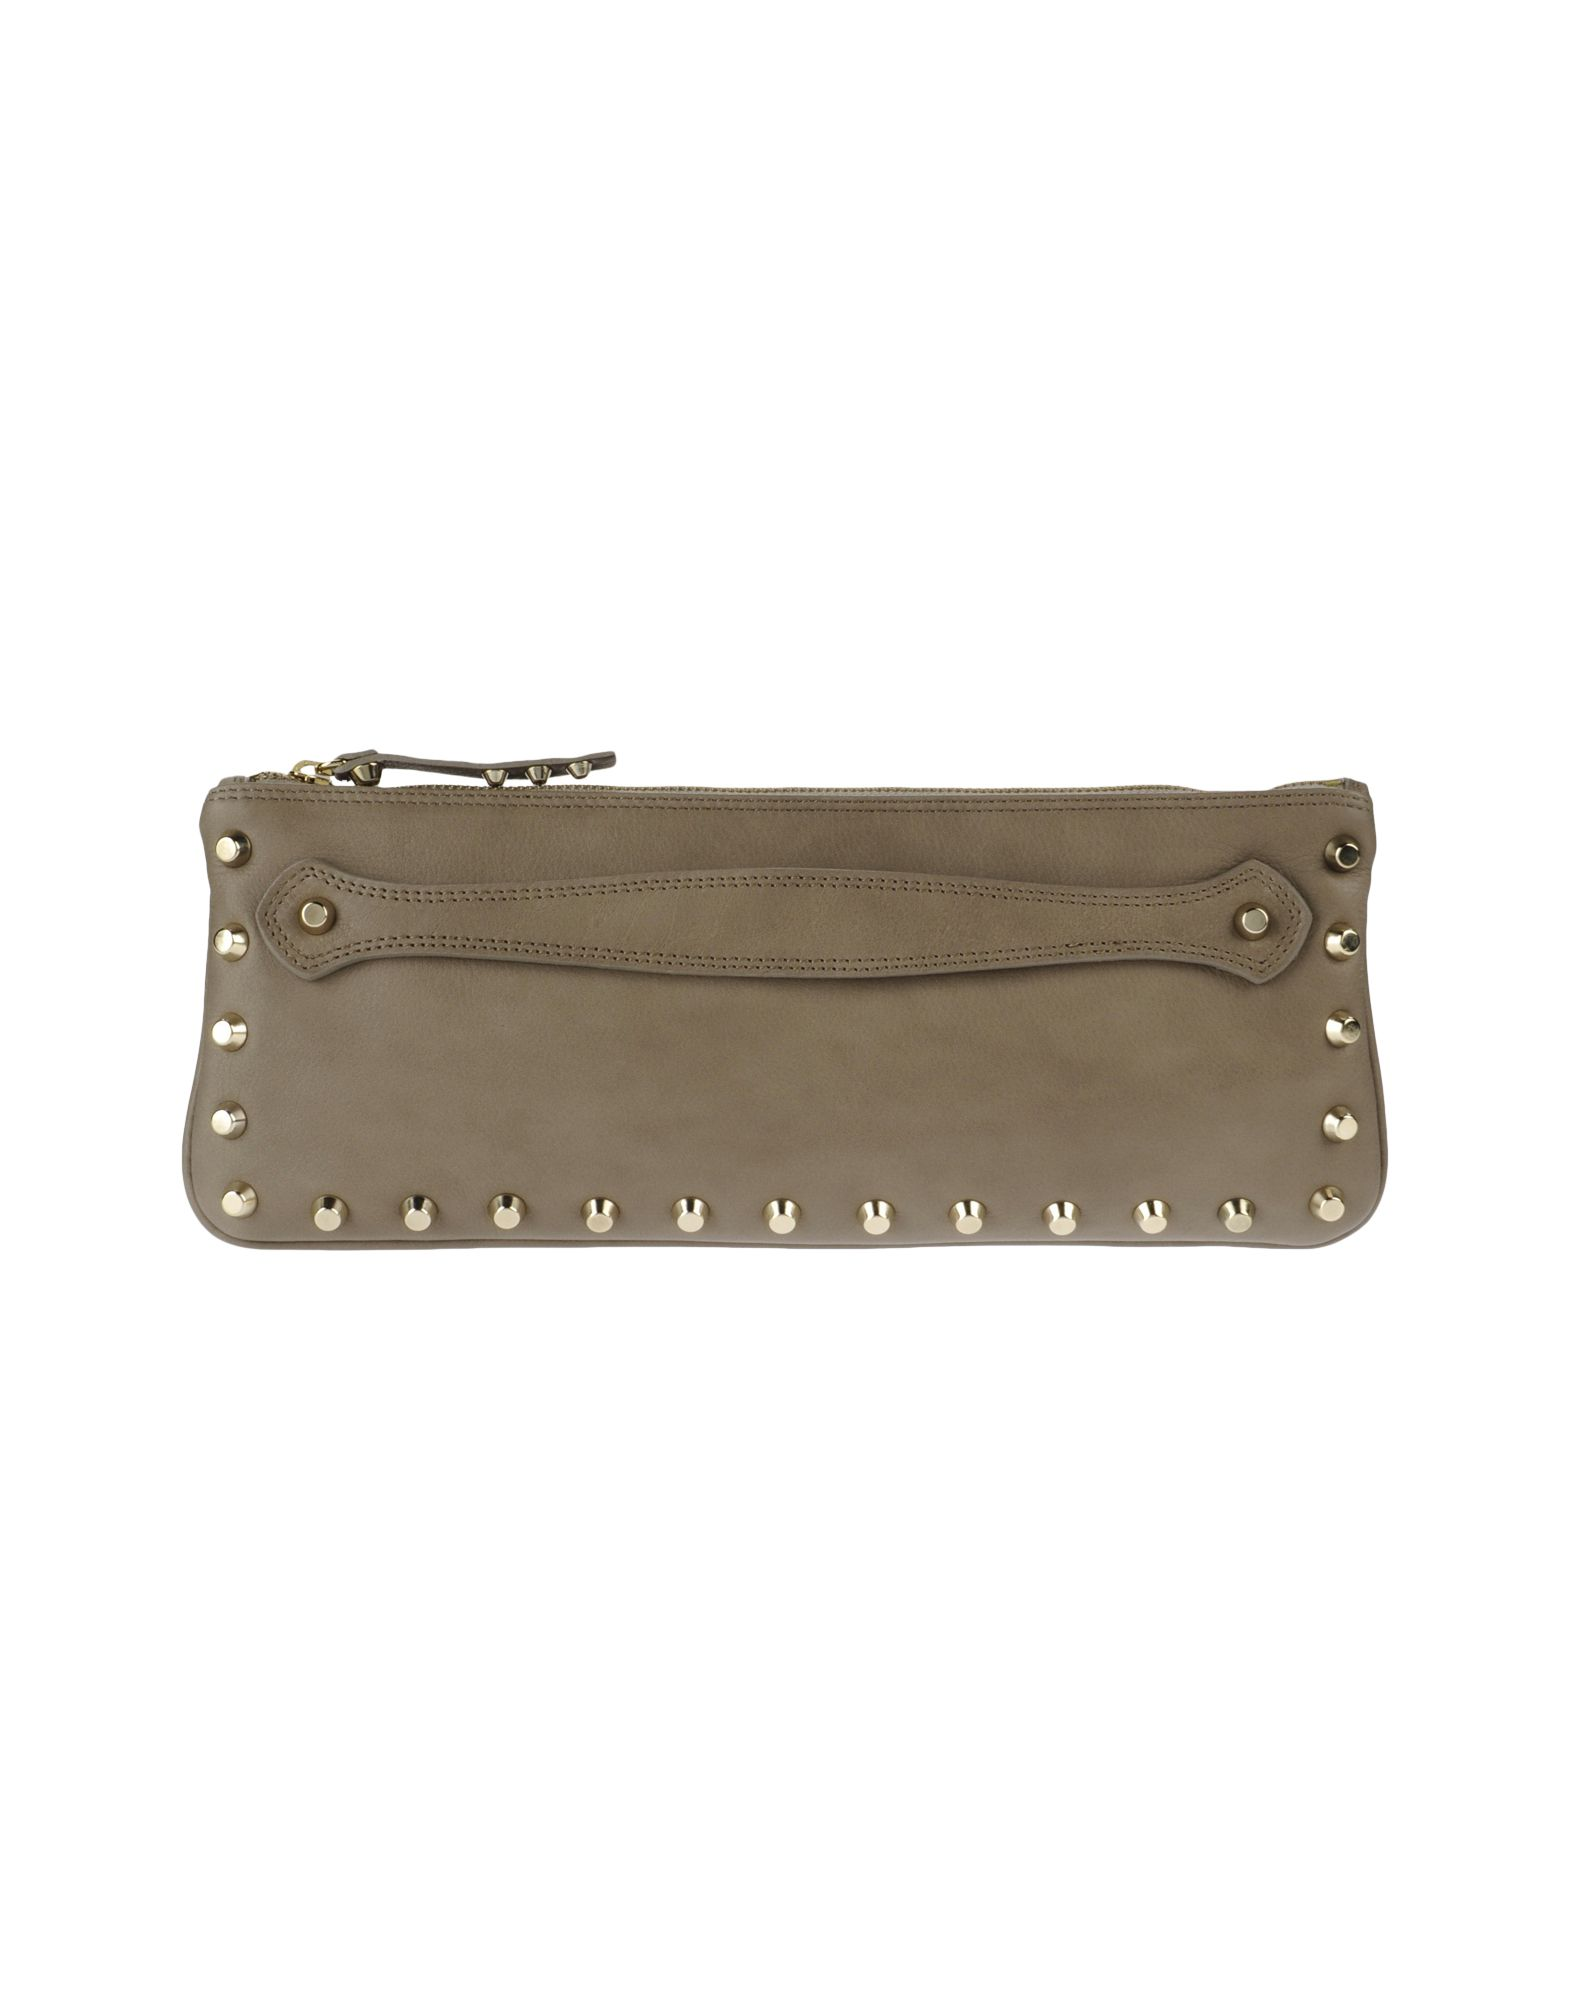 le solim female le solim medium leather bags